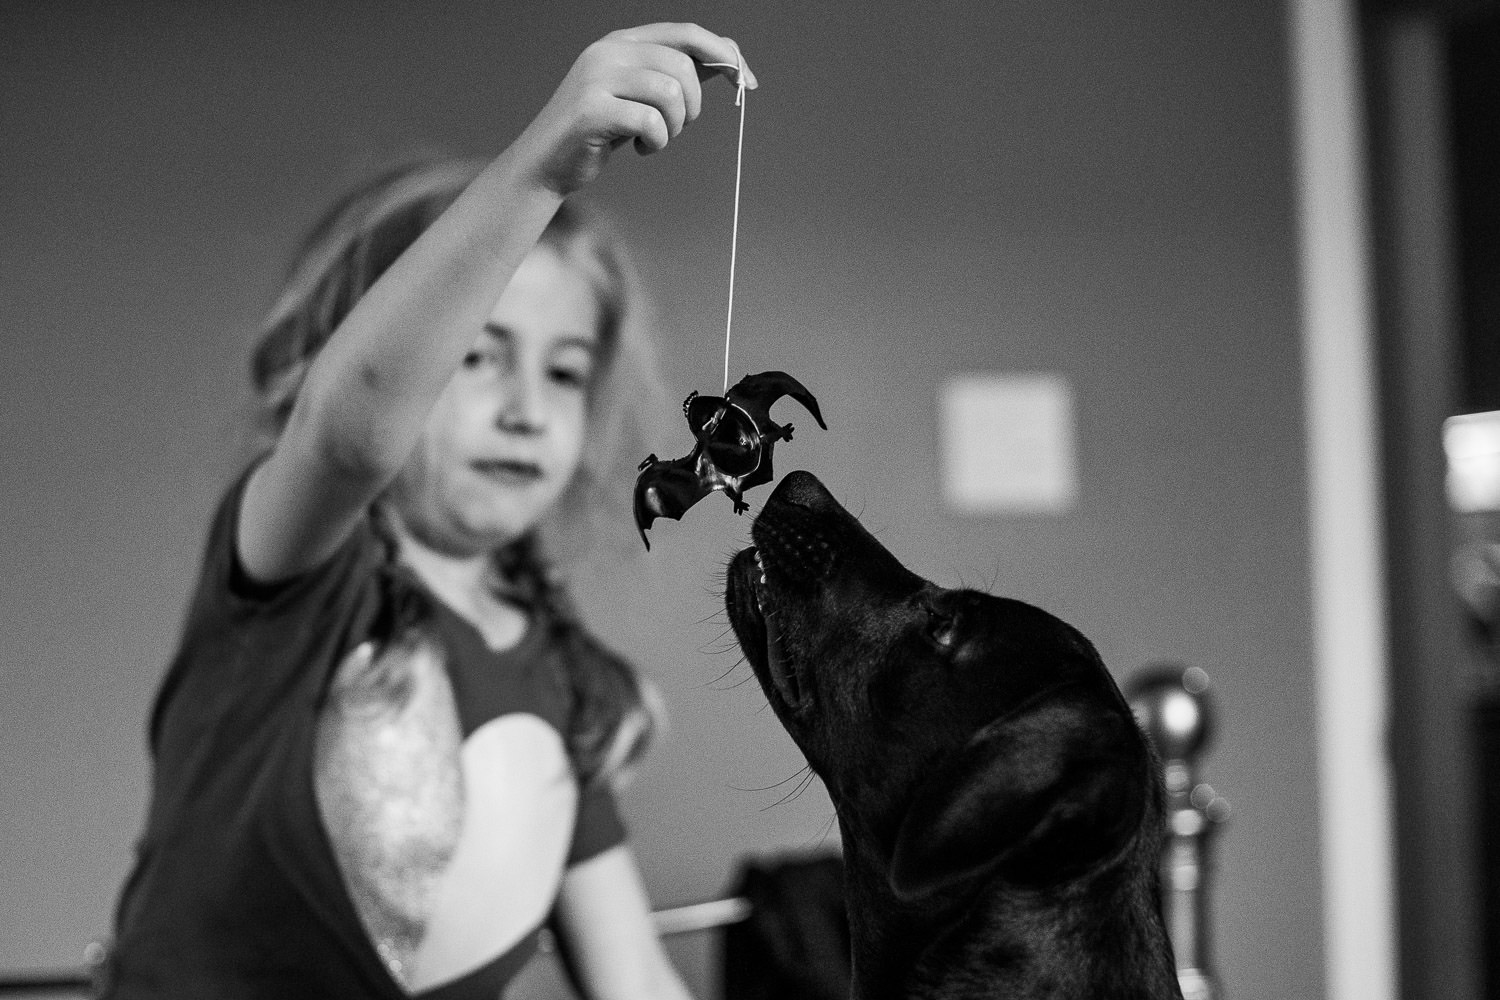 A little girl teases her dog with a plastic bat.